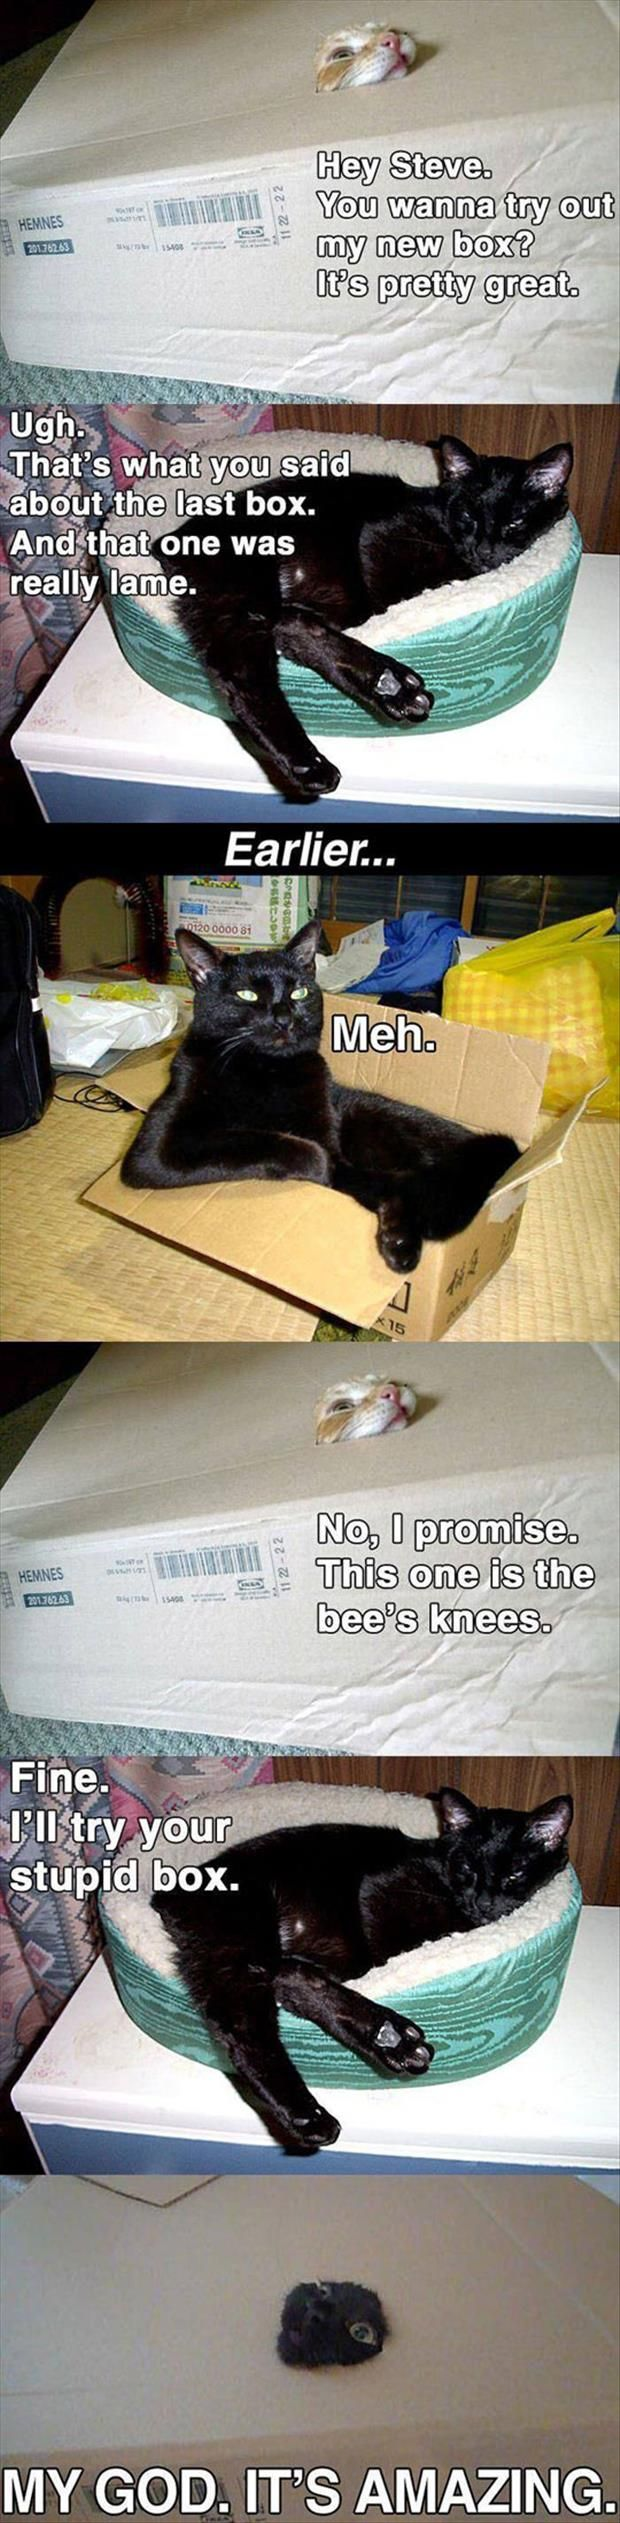 Funny Pictures Of The Day - 80 Pics